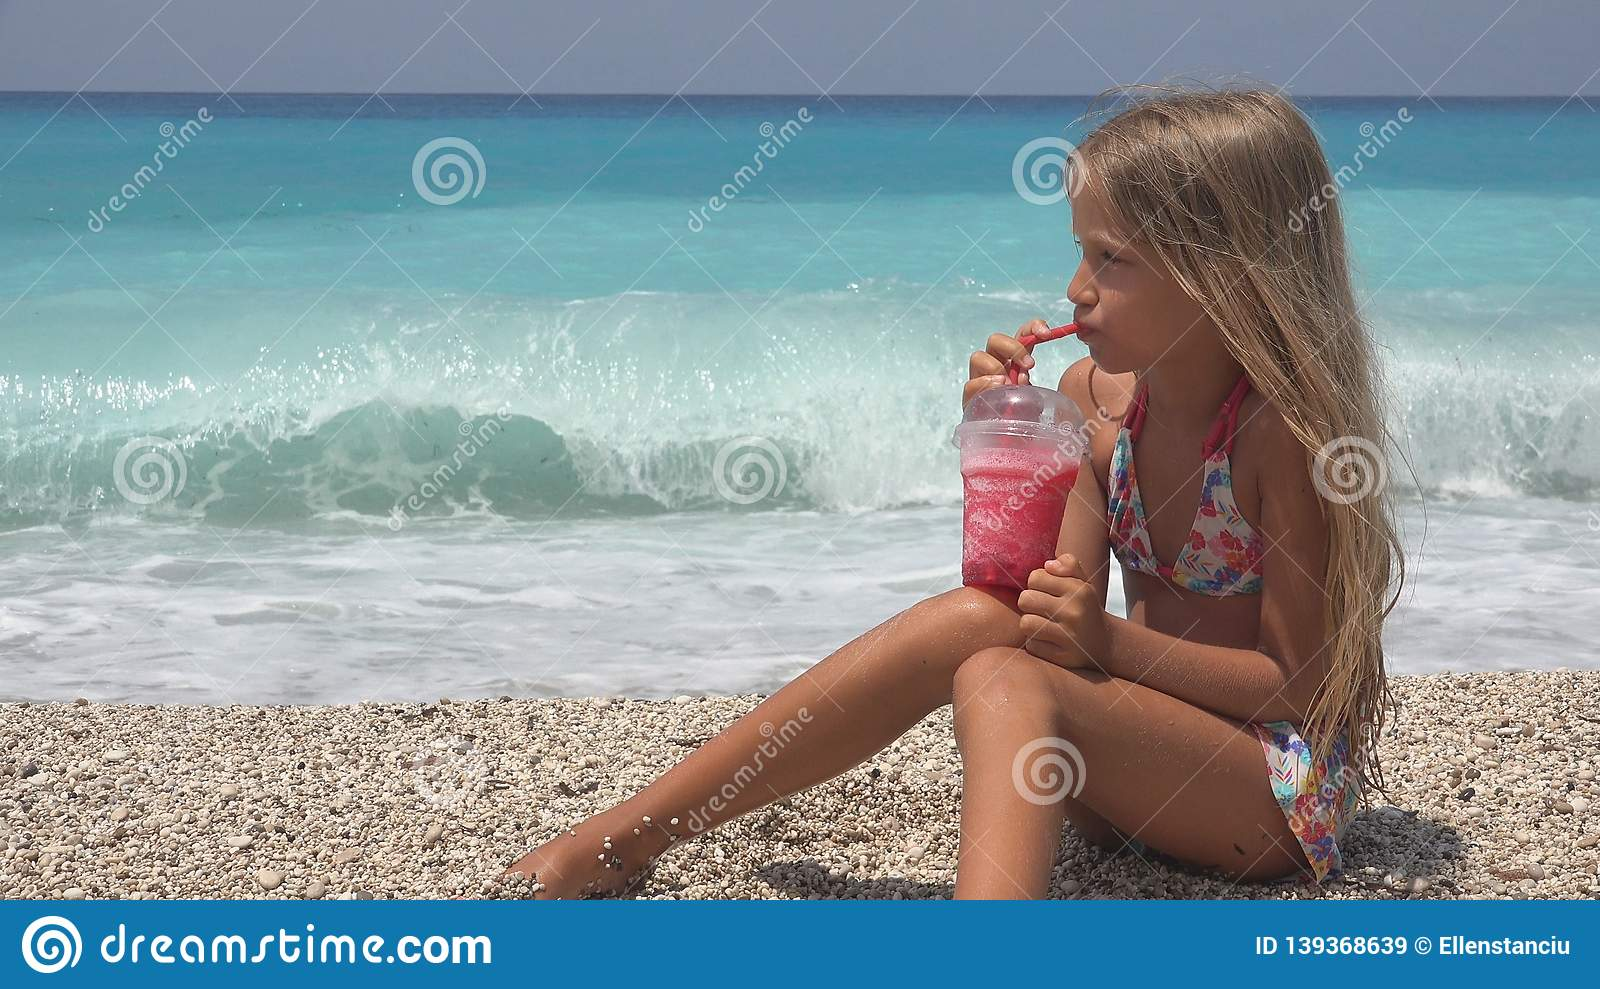 Child on Beach, Kid Portrait Drinking Juice,Thirsty Girl Face View on Seashore